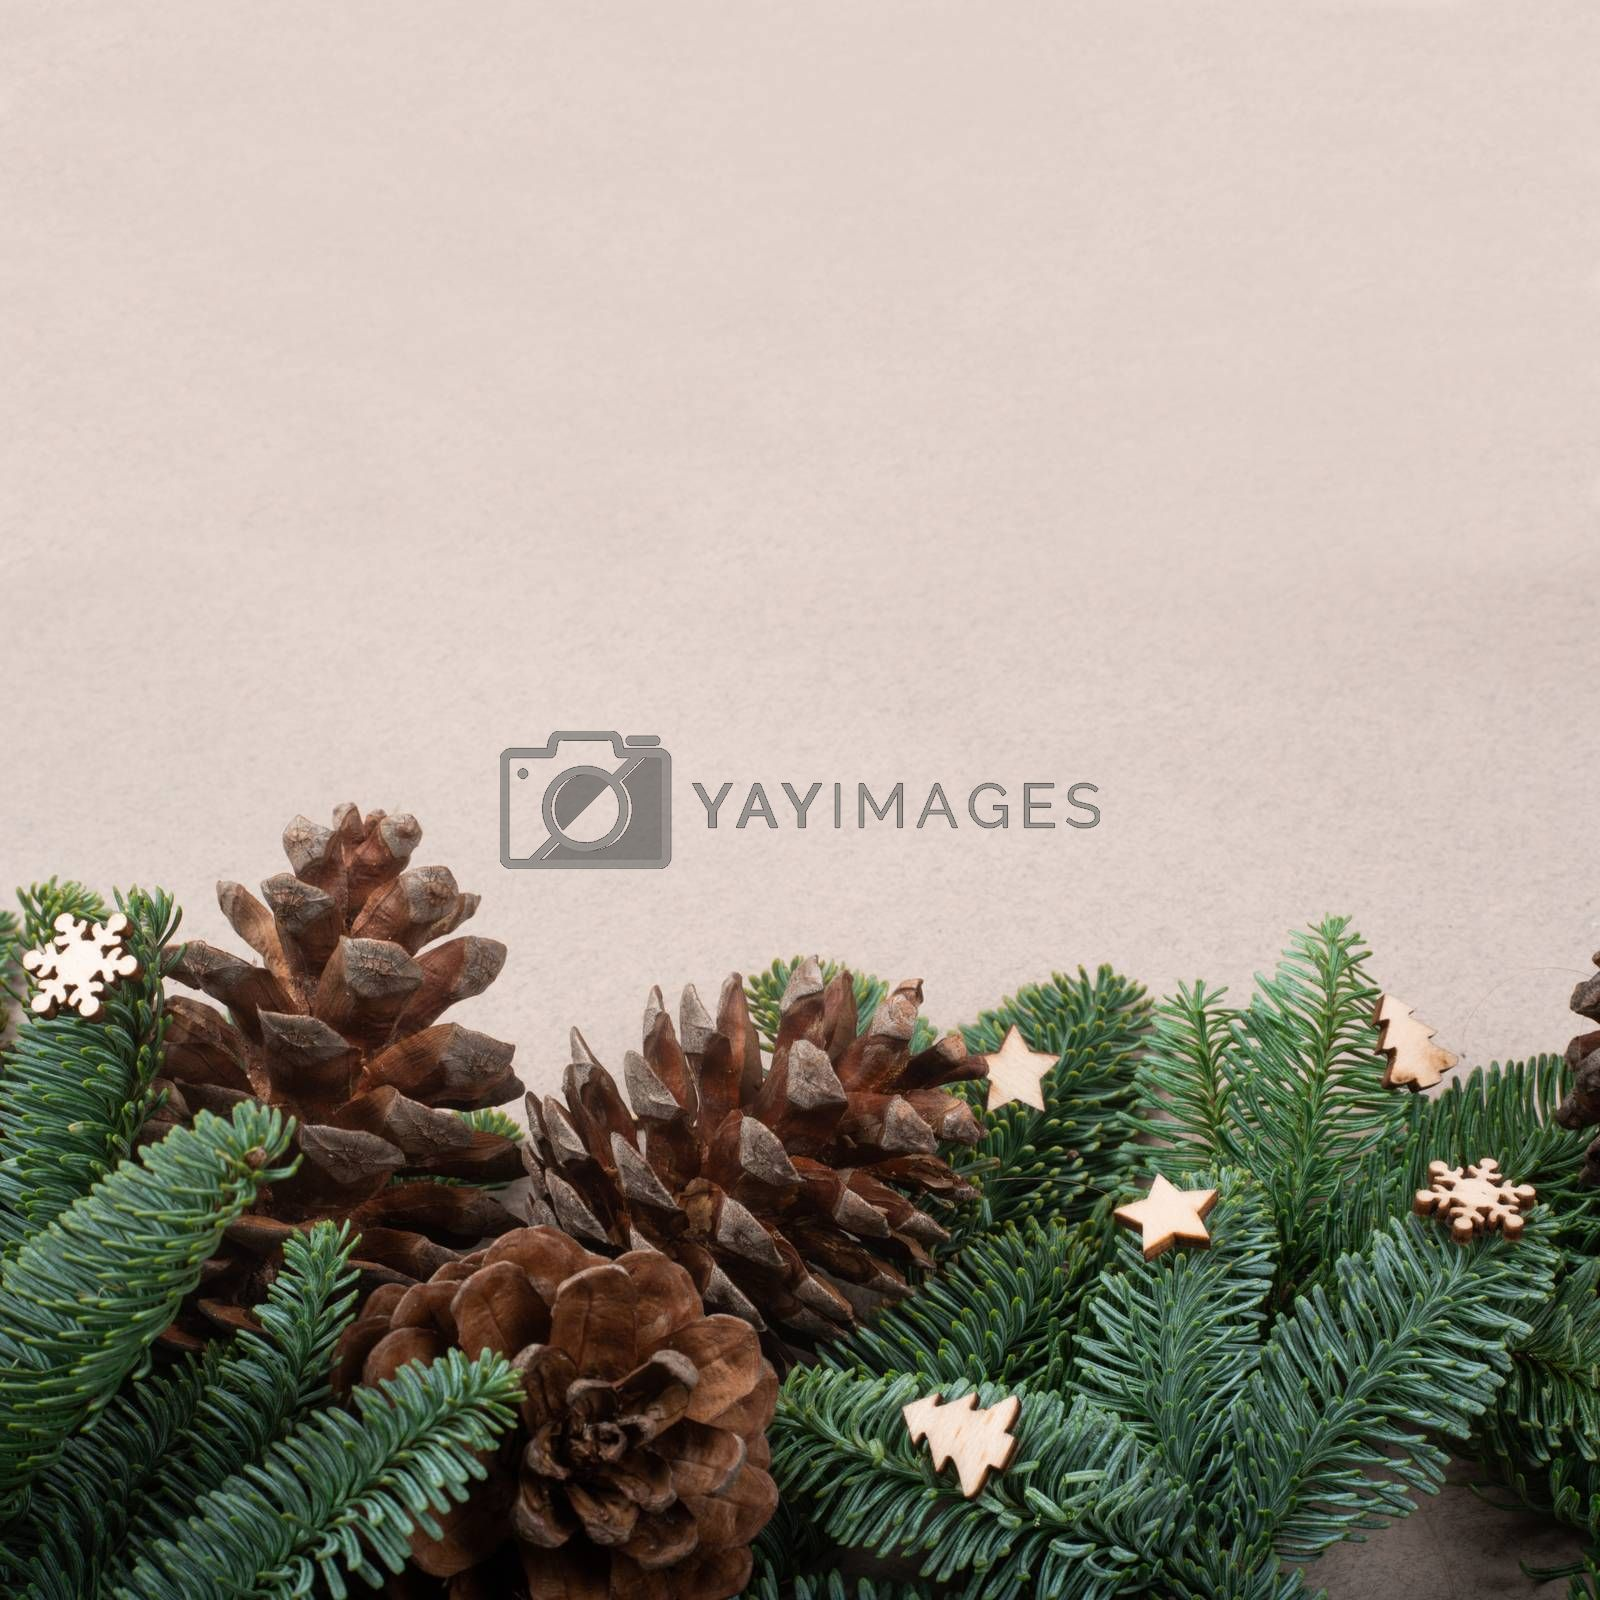 Christmas card light background with wooden decor fir tree branches border frame with copy space